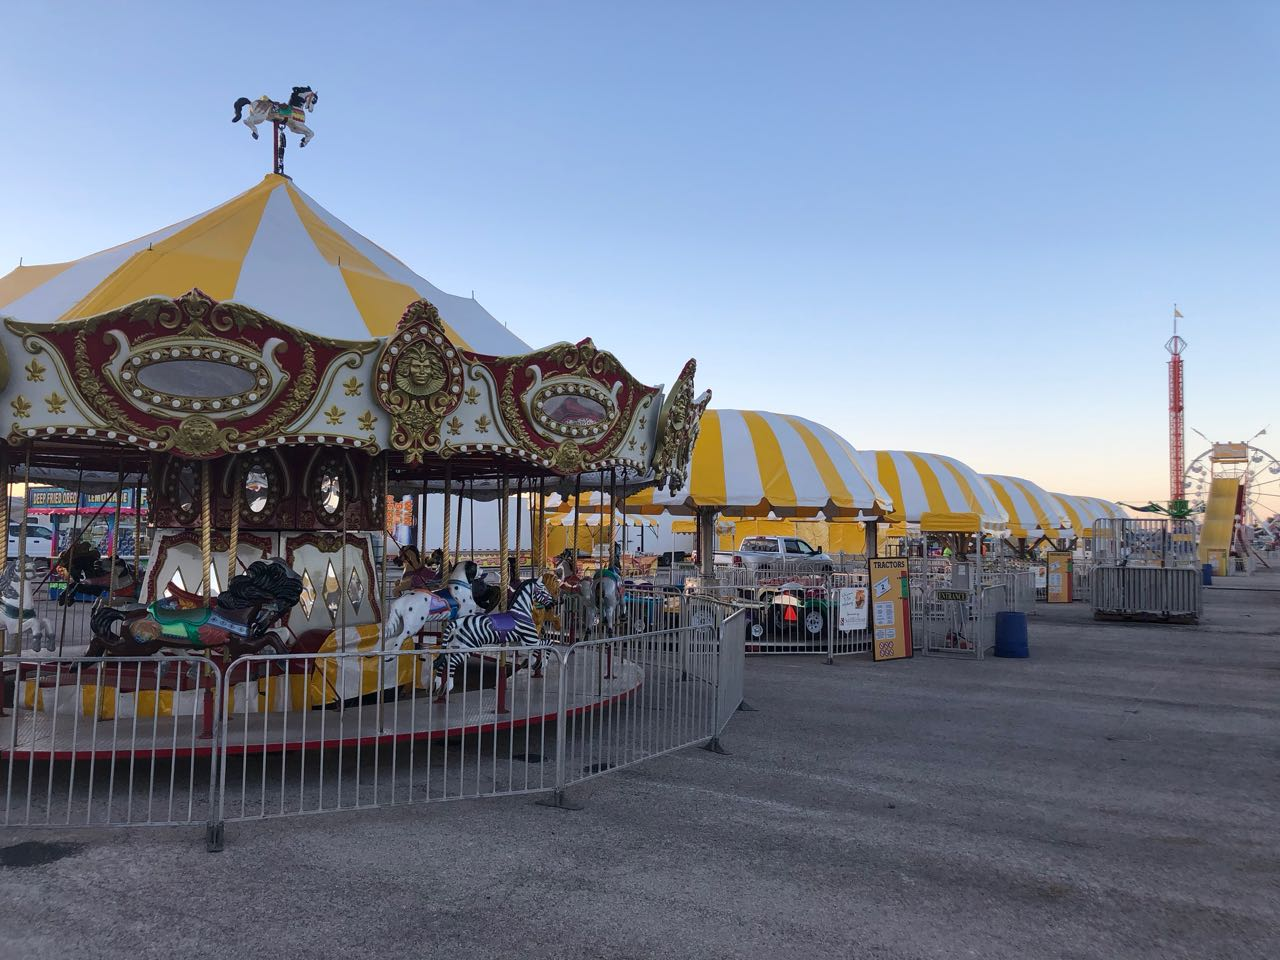 The Sutliff & Stout, Injury & Accident Law Firm Carnival was getting set-up on Thursday evening, Jan. 30, 2019. (LIVE! Photo/Joe Hyde)